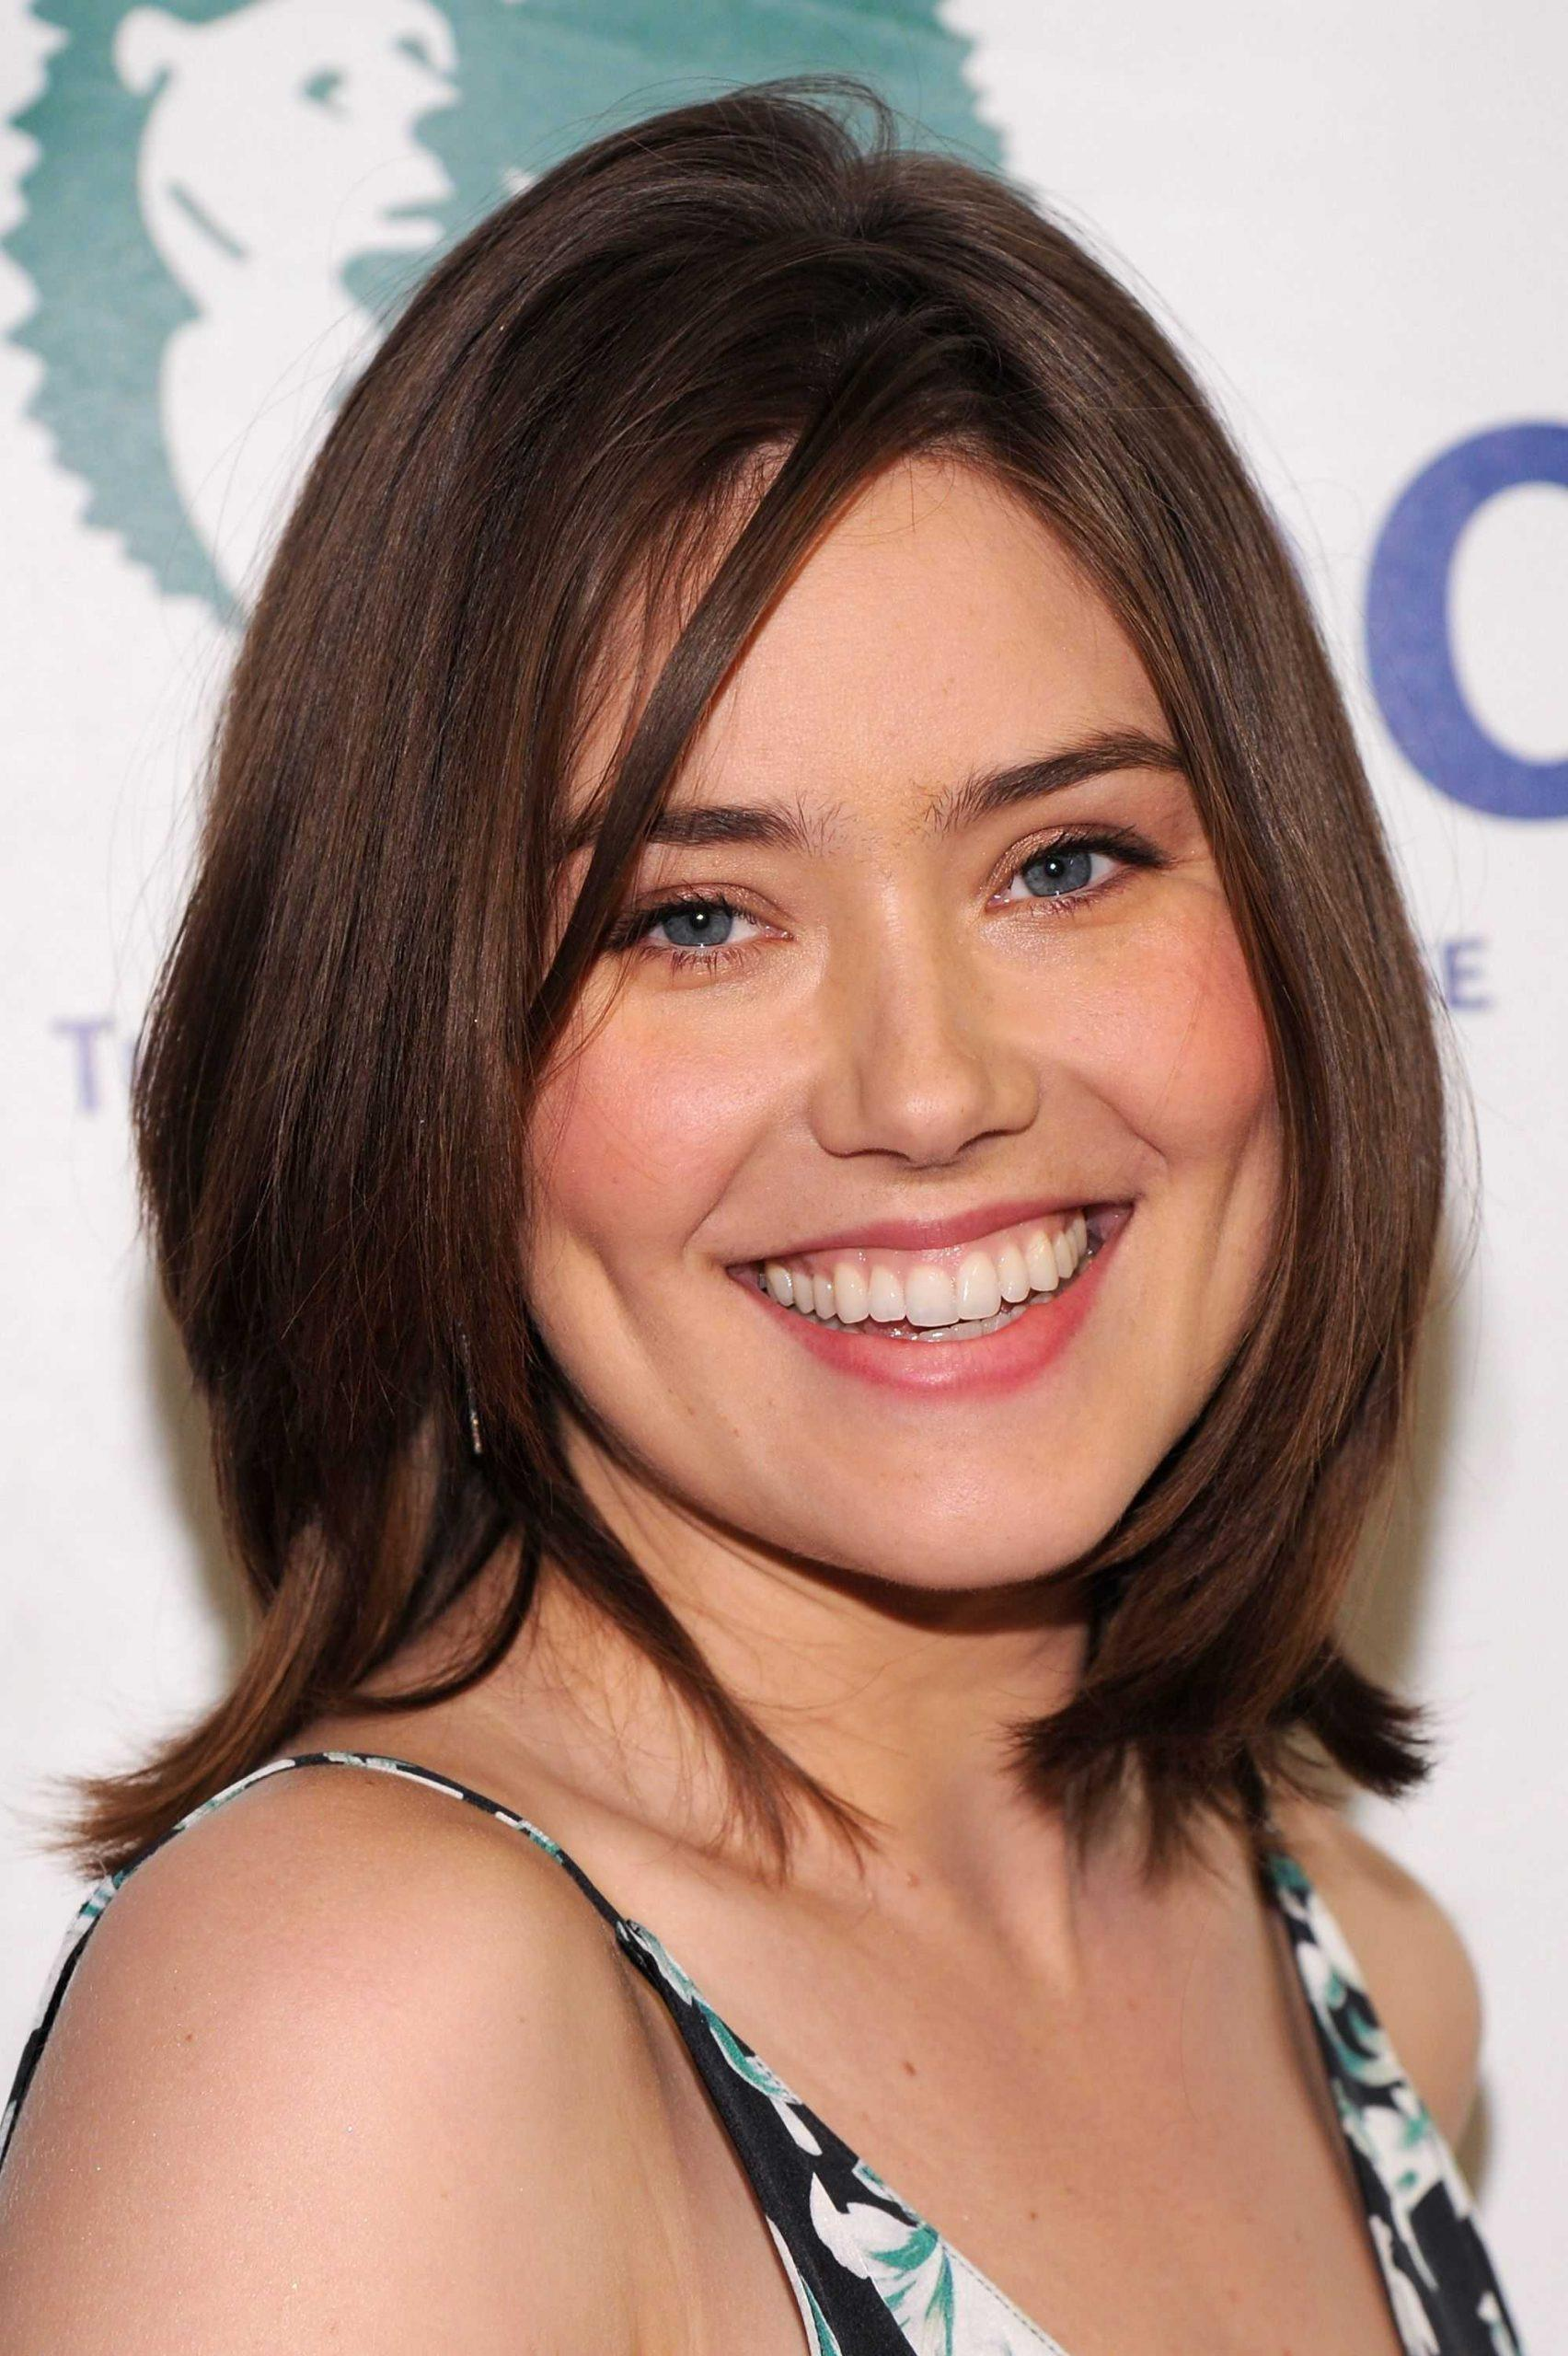 61 Hottest Megan Boone Boobs Pictures Expose Her Perfect